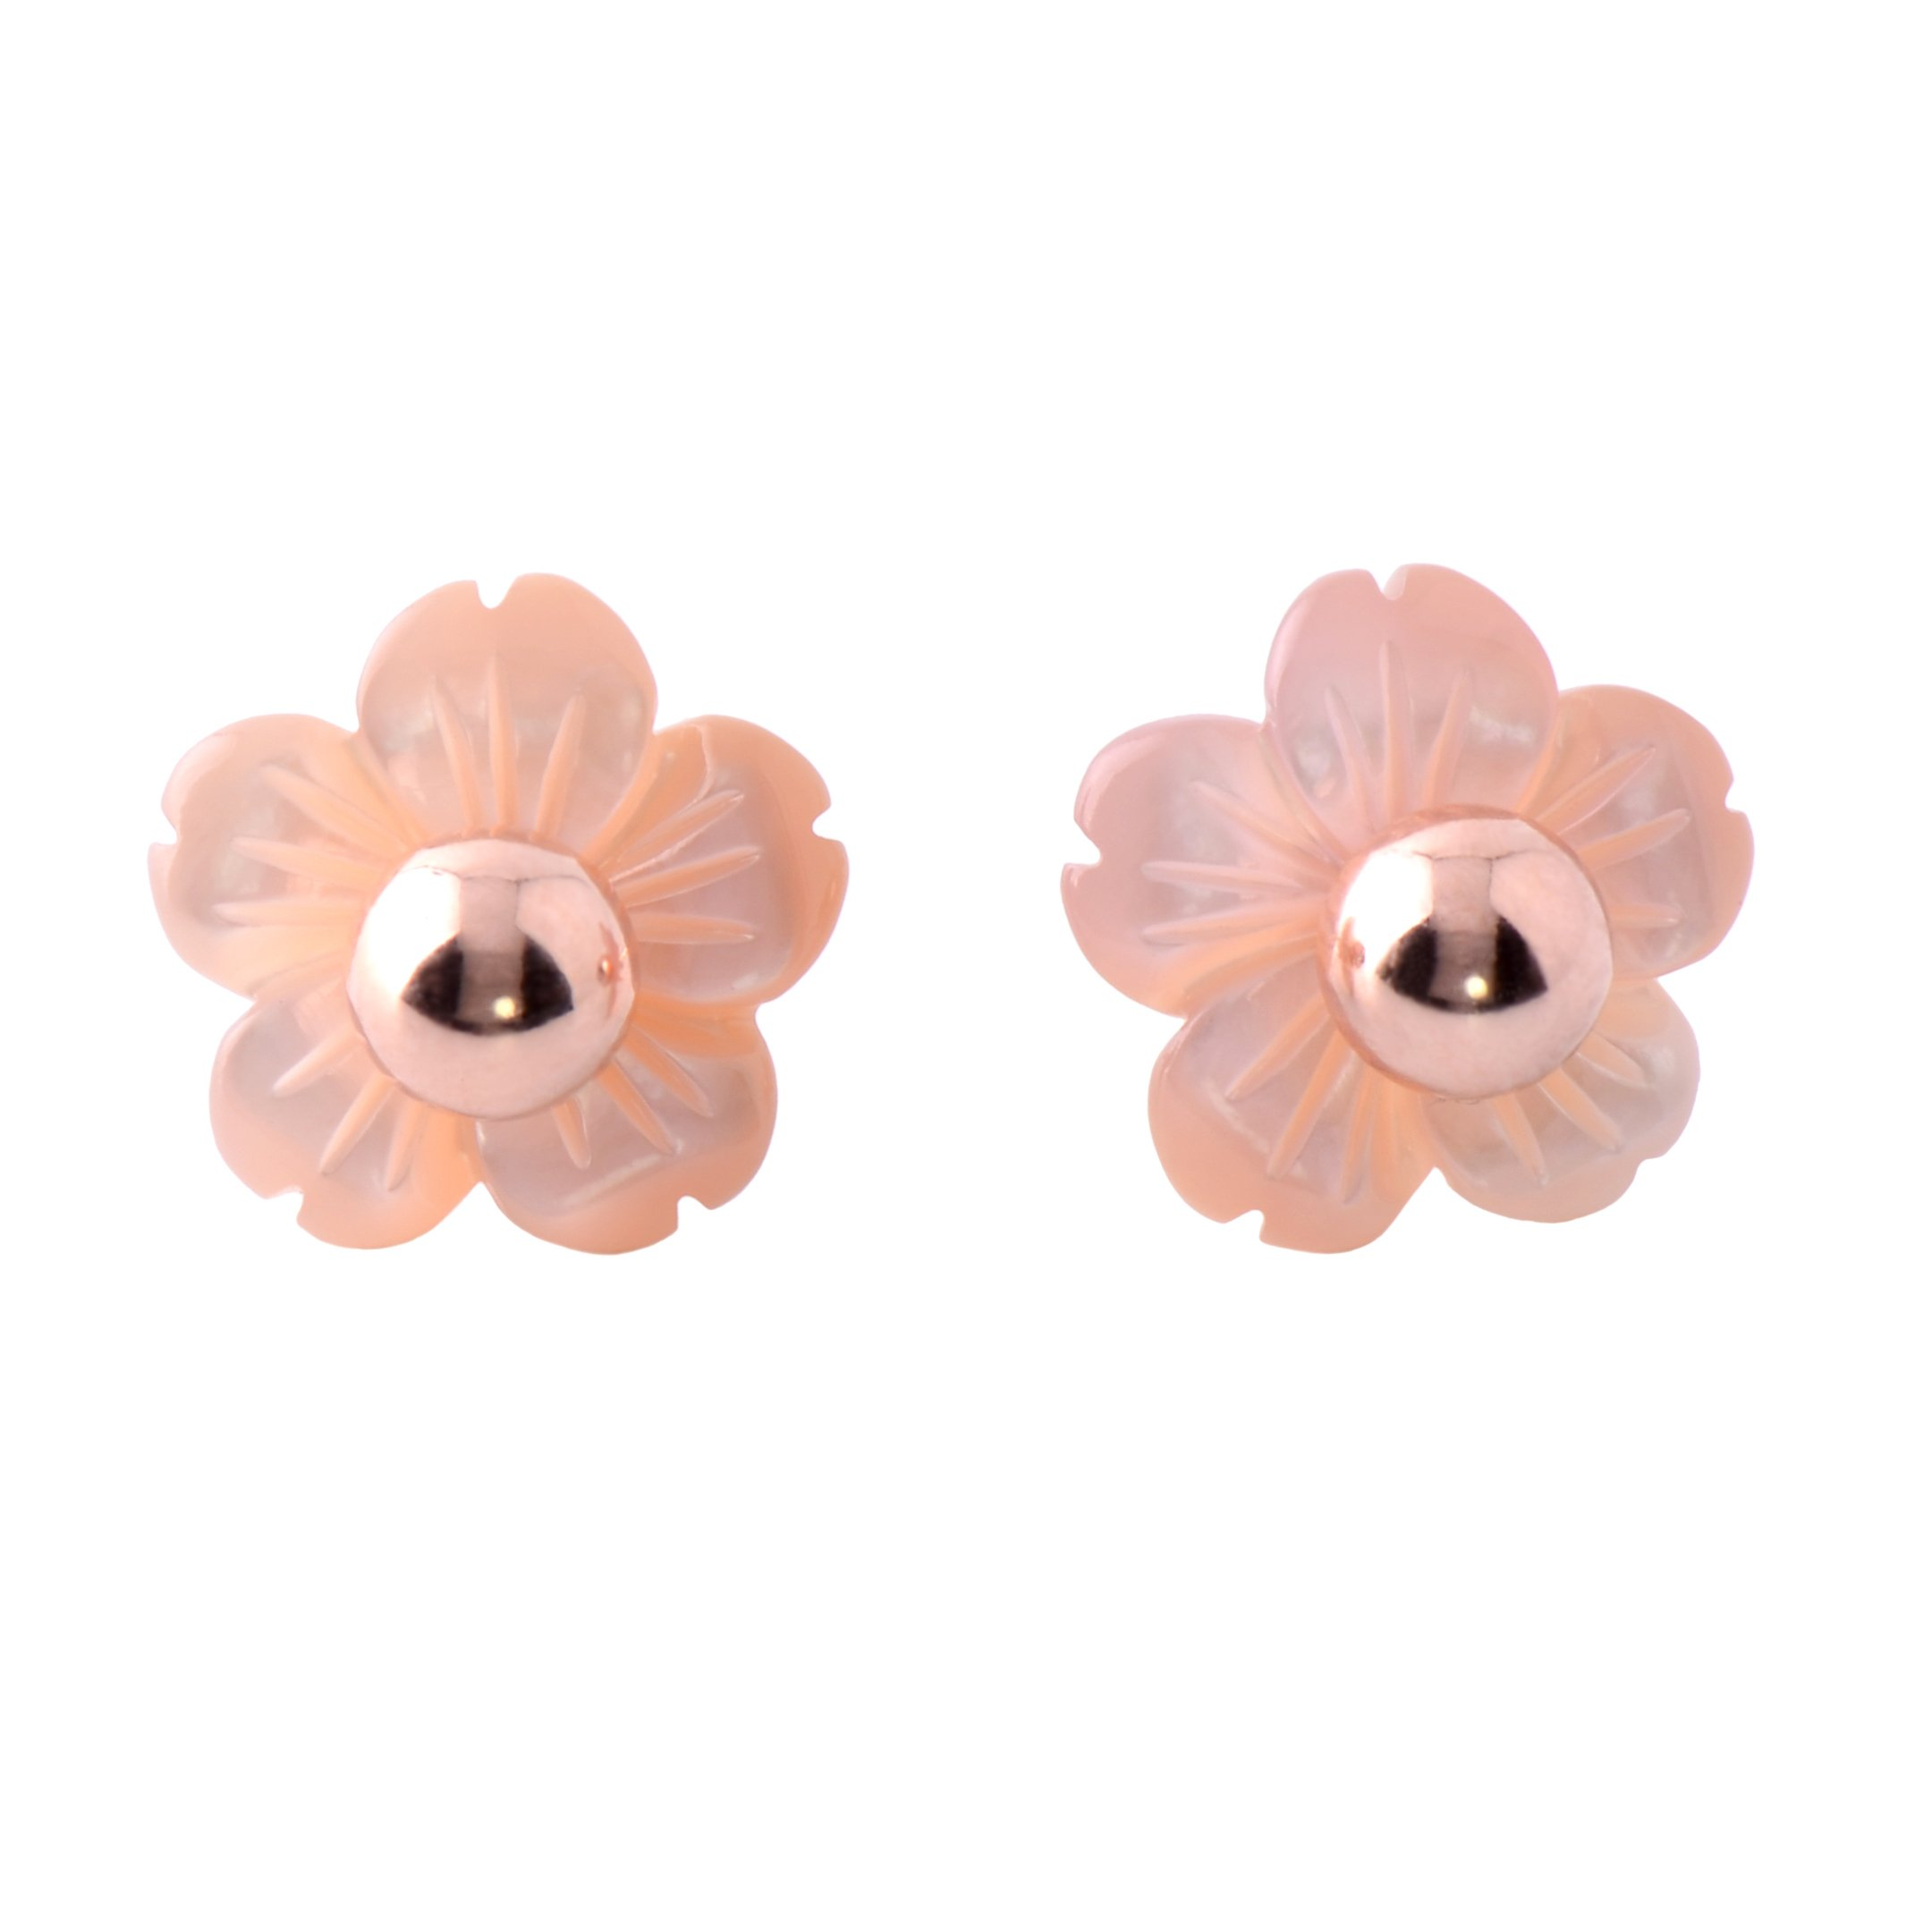 Paialco Mother of Pearl Flower Shape Earring Jackets Ball Rose Gold Tone 6MM